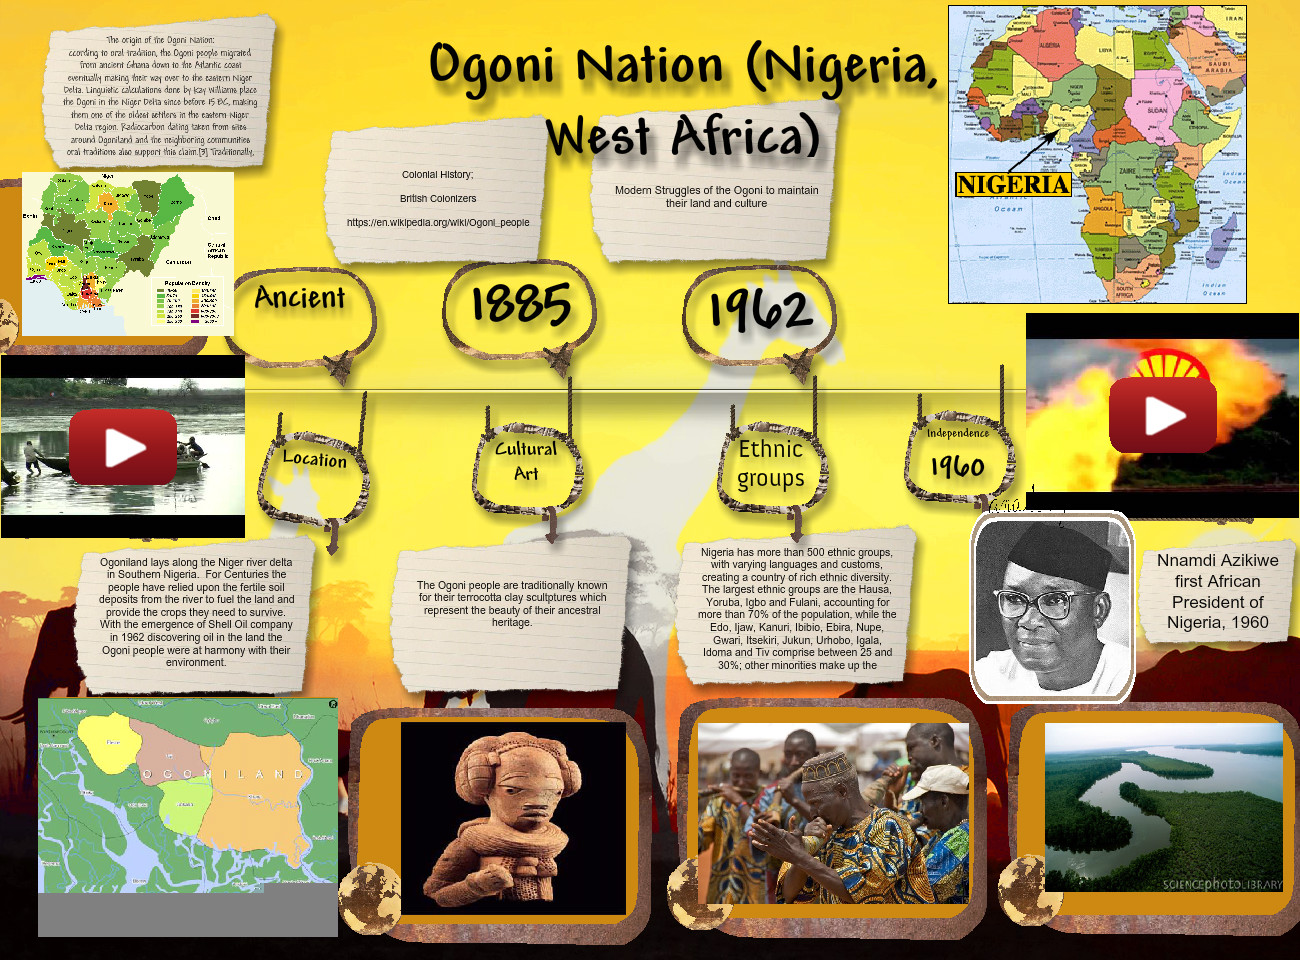 Ogoni Nation